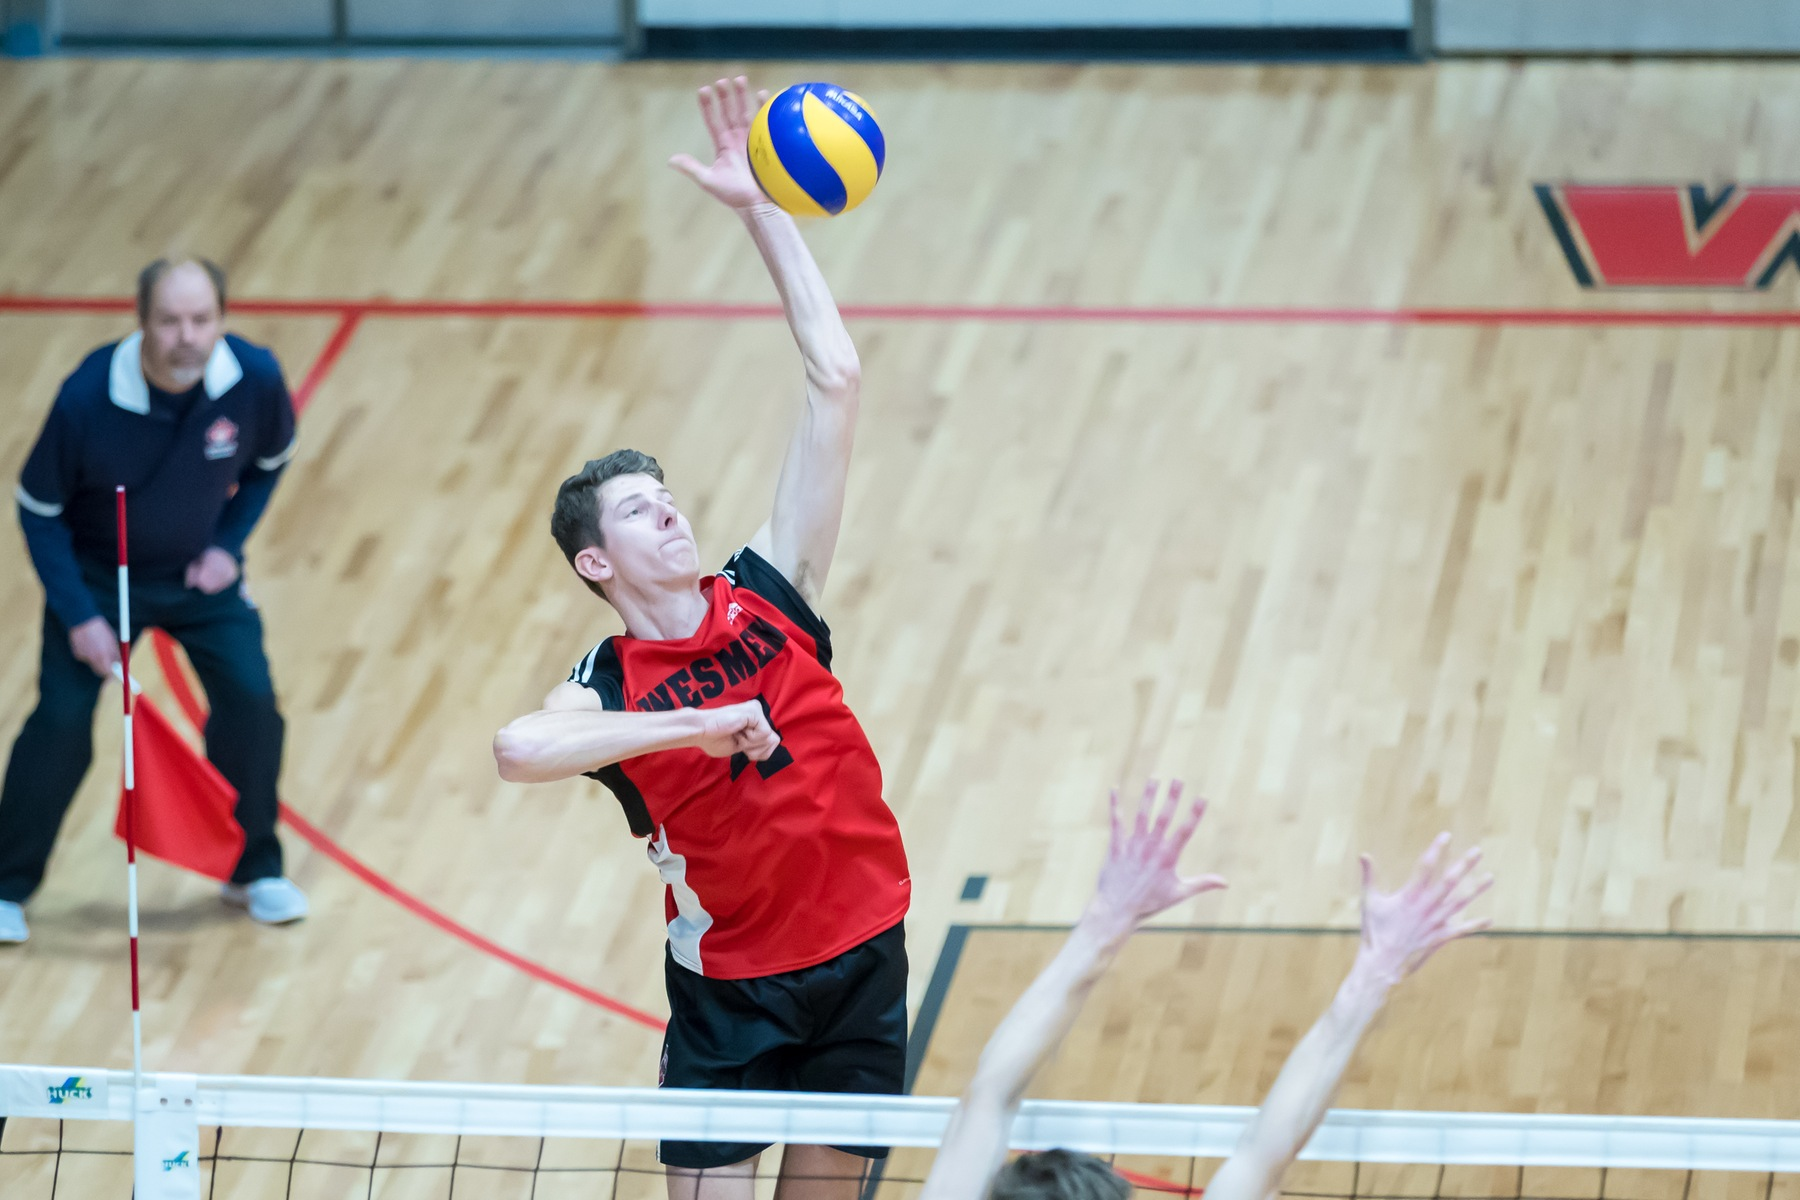 Daniel Thiessen had a match-high 11 kills to lead the Winnipeg Wesmen past the Dalhousie Tigers Monday in Halifax. (Kelly Morton/Wesmen Athletics file)